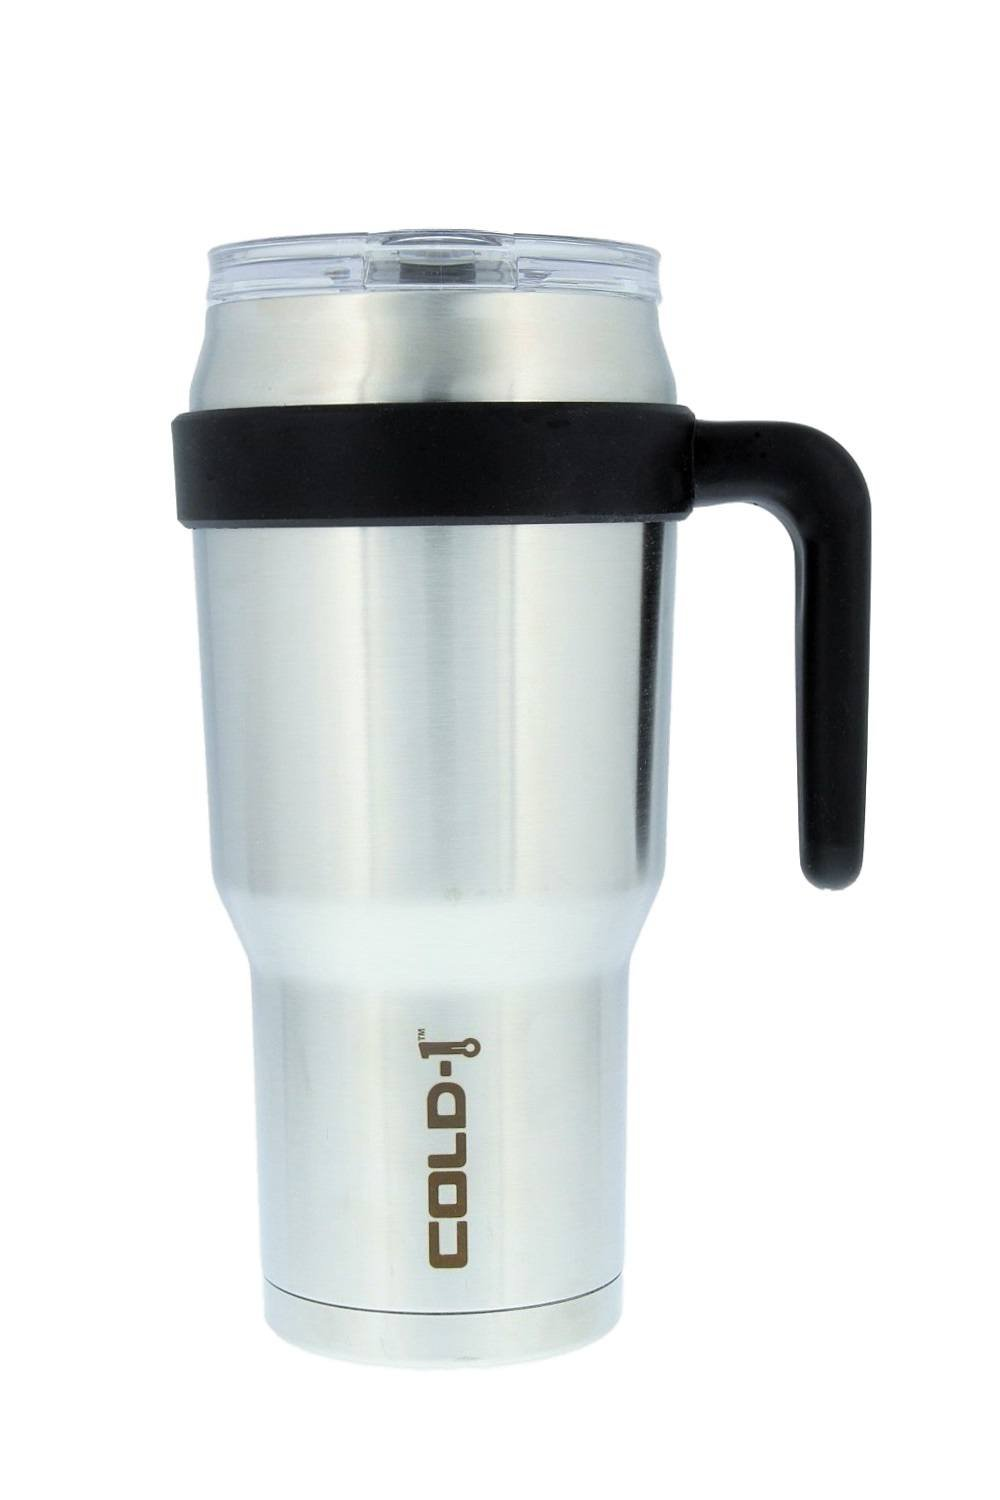 reduce COLD-1 Extra Large Vacuum Insulated Thermal Mug with Slender Base, 3-in-1 Lid & Straw, Ergonomic Handle, 40oz - Tasteless and Odorless Stainless Steel